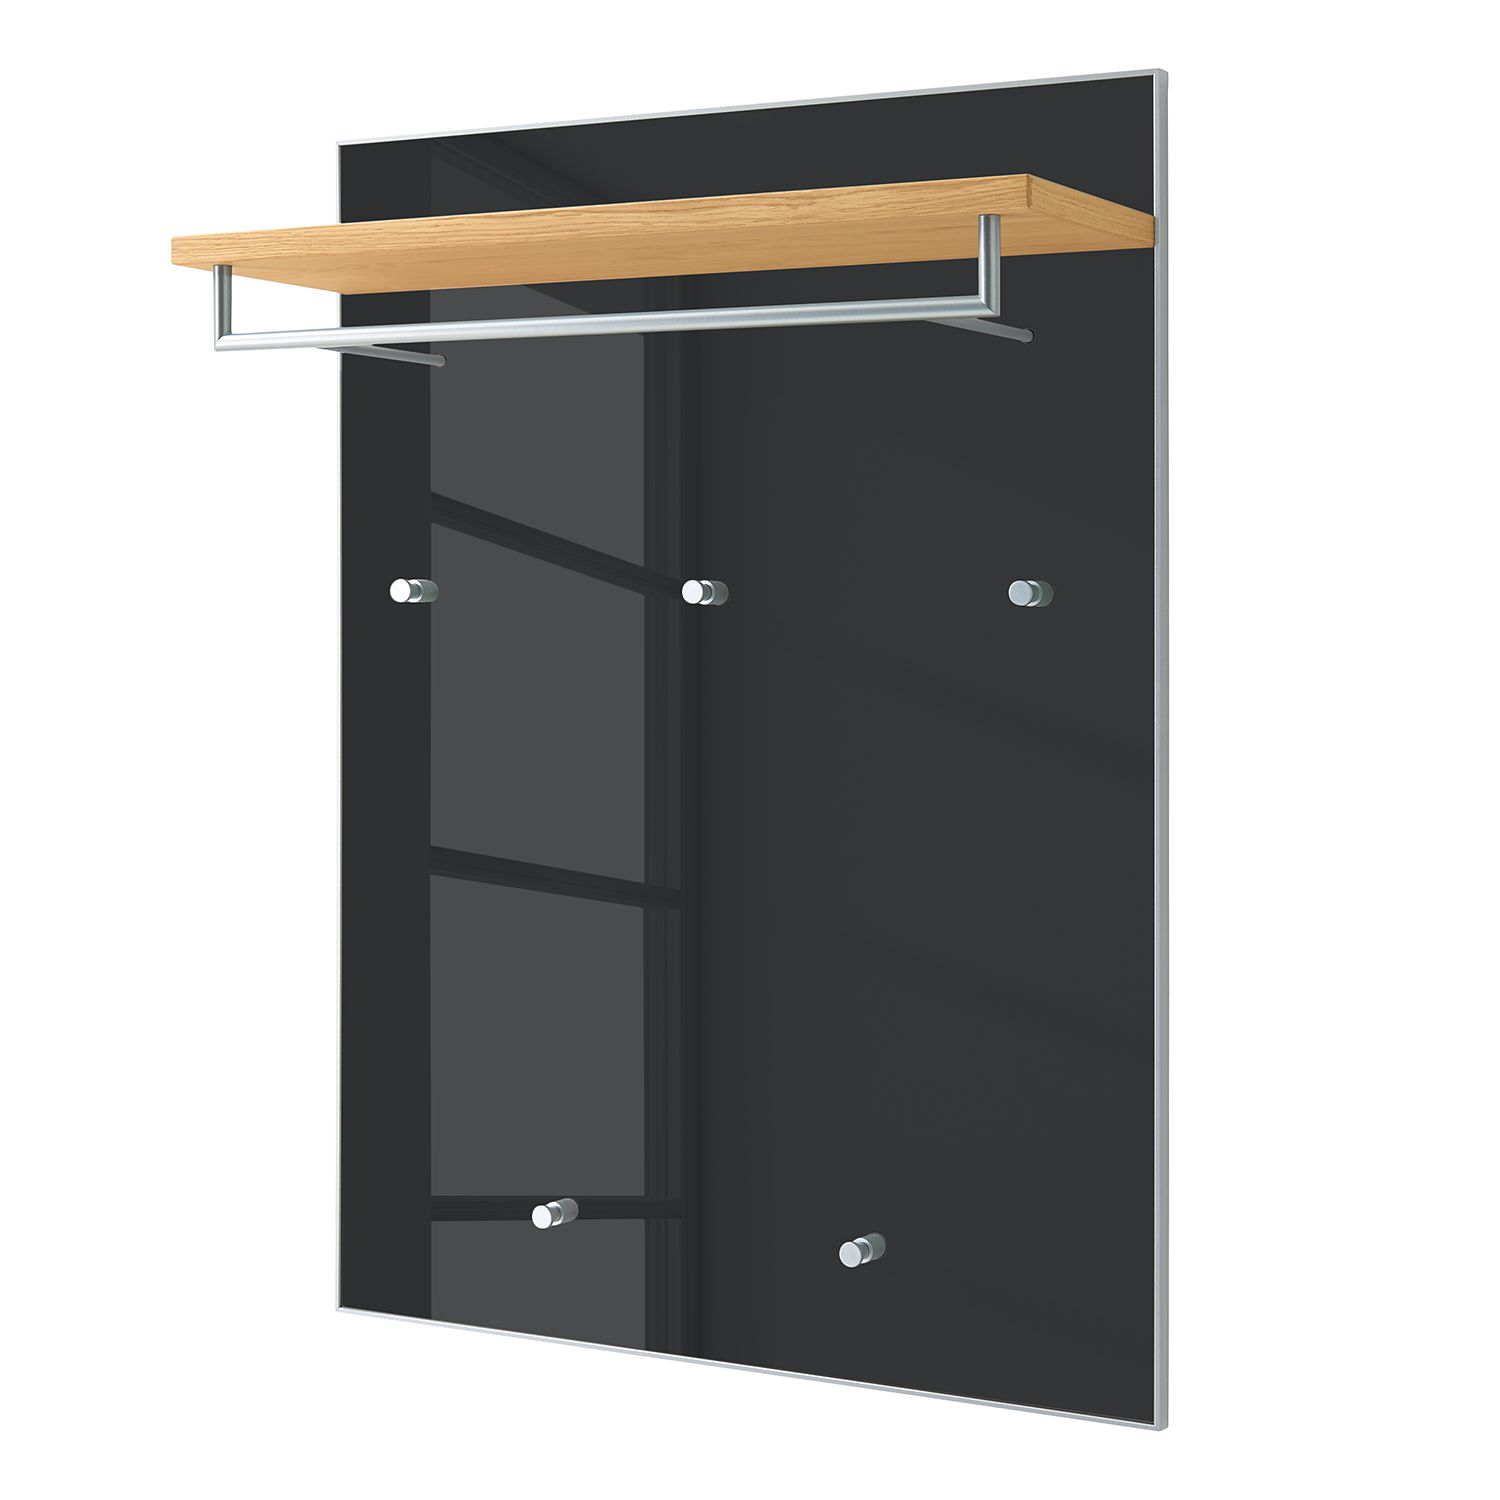 garderobe 80 cm breit preisvergleiche. Black Bedroom Furniture Sets. Home Design Ideas